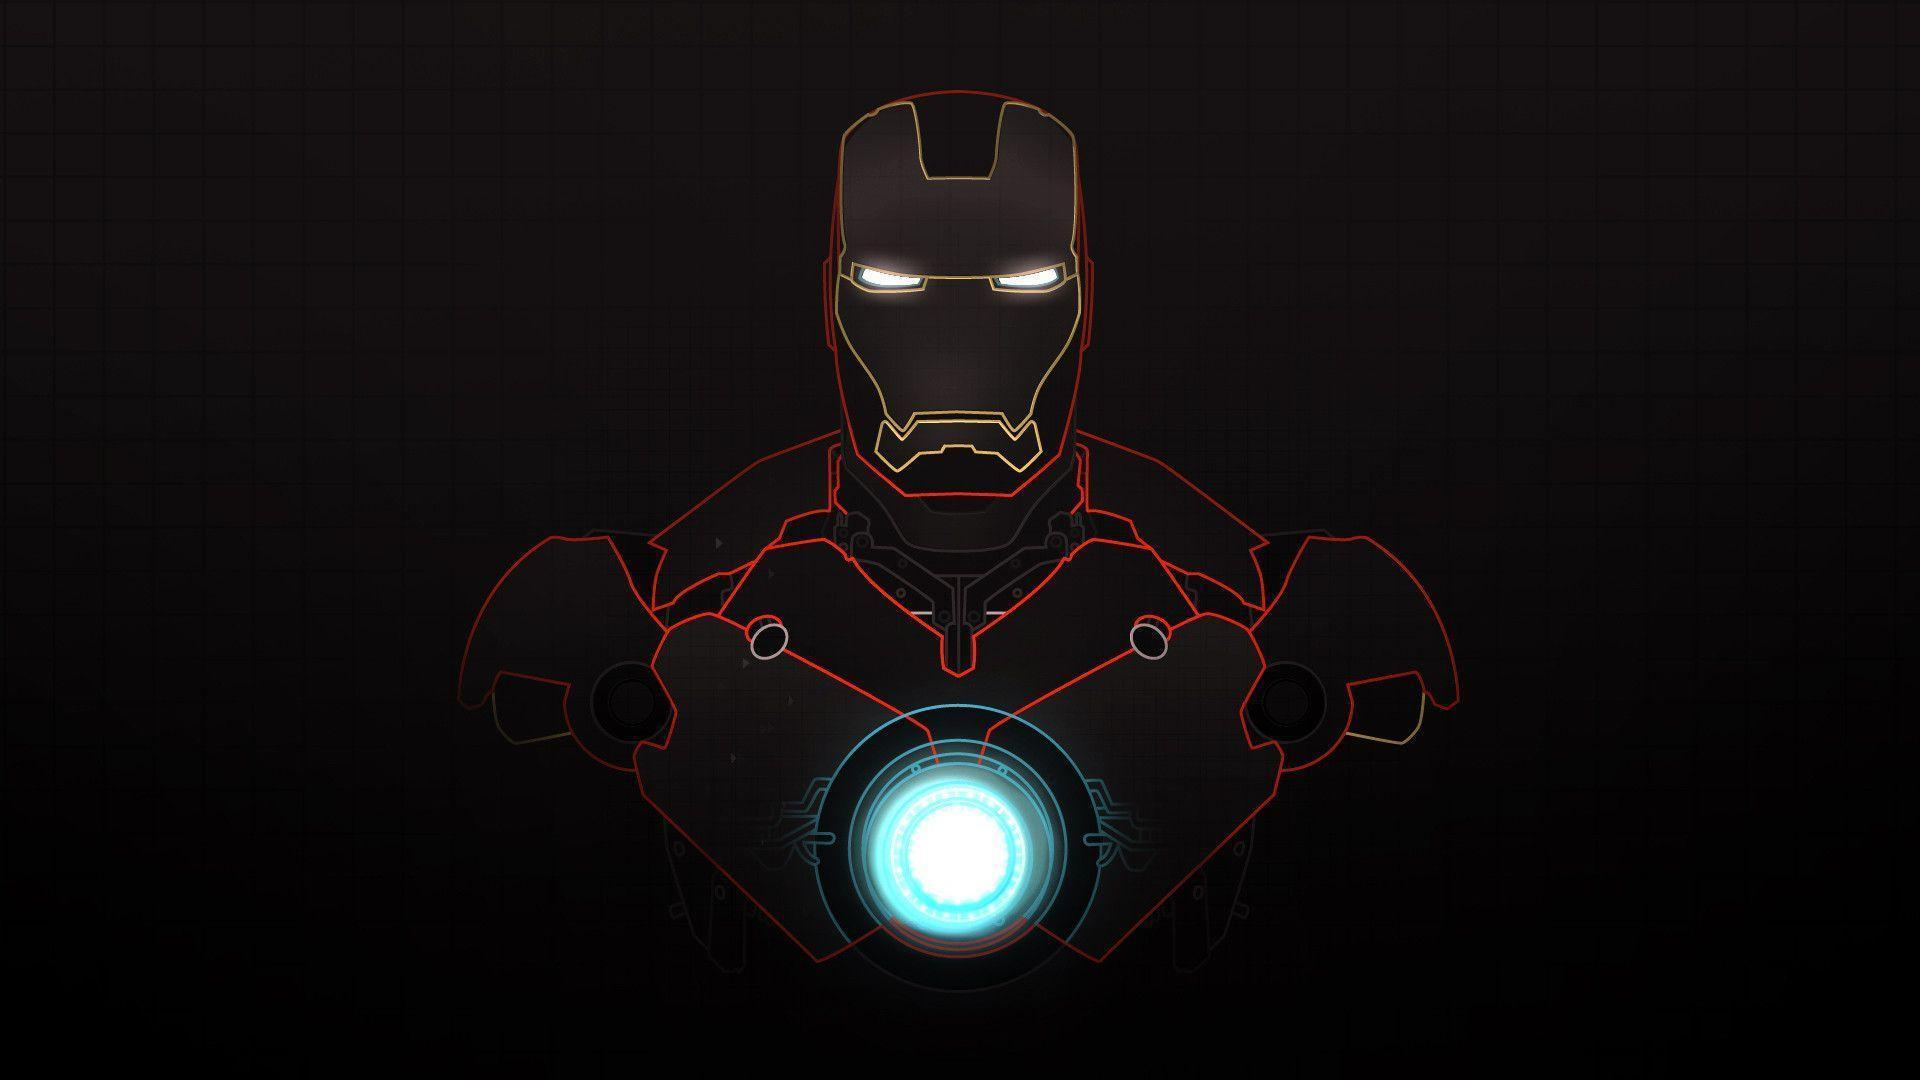 Ironman Wallpaper Iphone 4